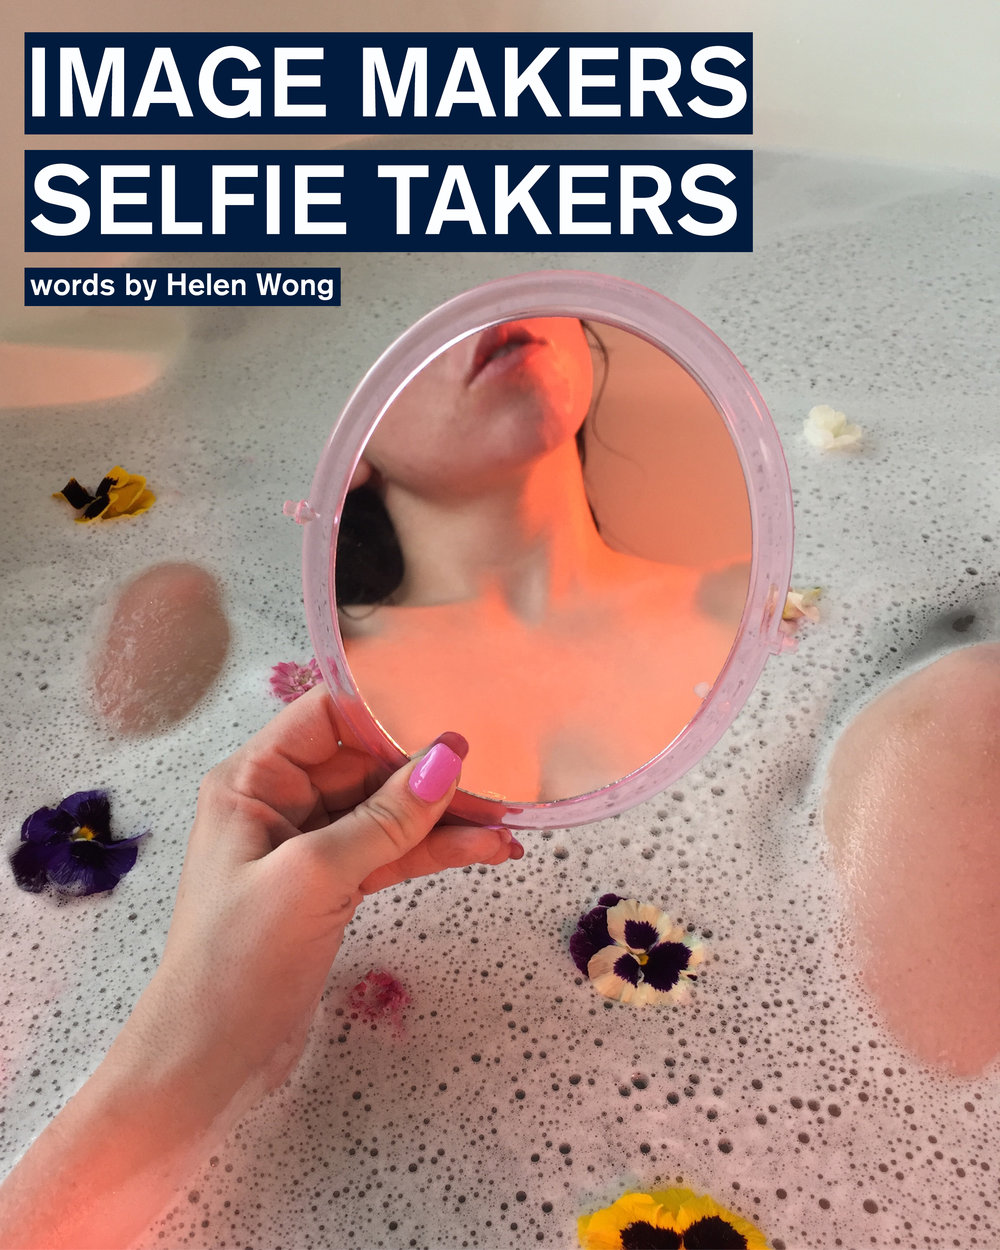 'Instagram' and 'selfies' are terms that have permeated into our everyday culture. We've become a generation saturated by images: ones depicting what we eat, what we wear, or what we do. We've distanced ourselves from images taken by others, to ones produced by us. We are the image-makers and the selfie-takers...